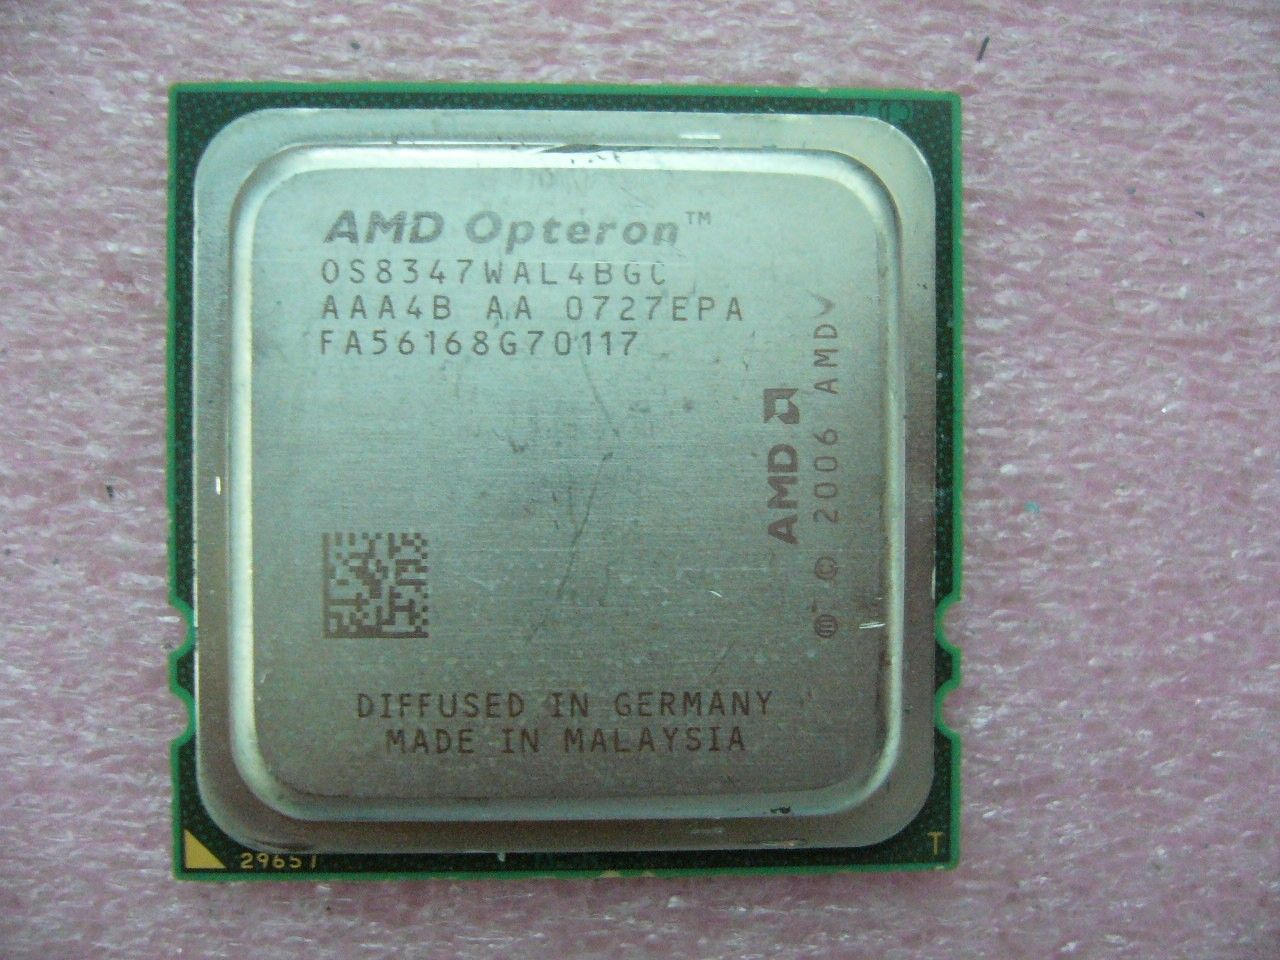 QTY 1x AMD Opteron 8347 1.9 GHz Quad-Core OS8347WAL4BGC CPU Socket F 1207